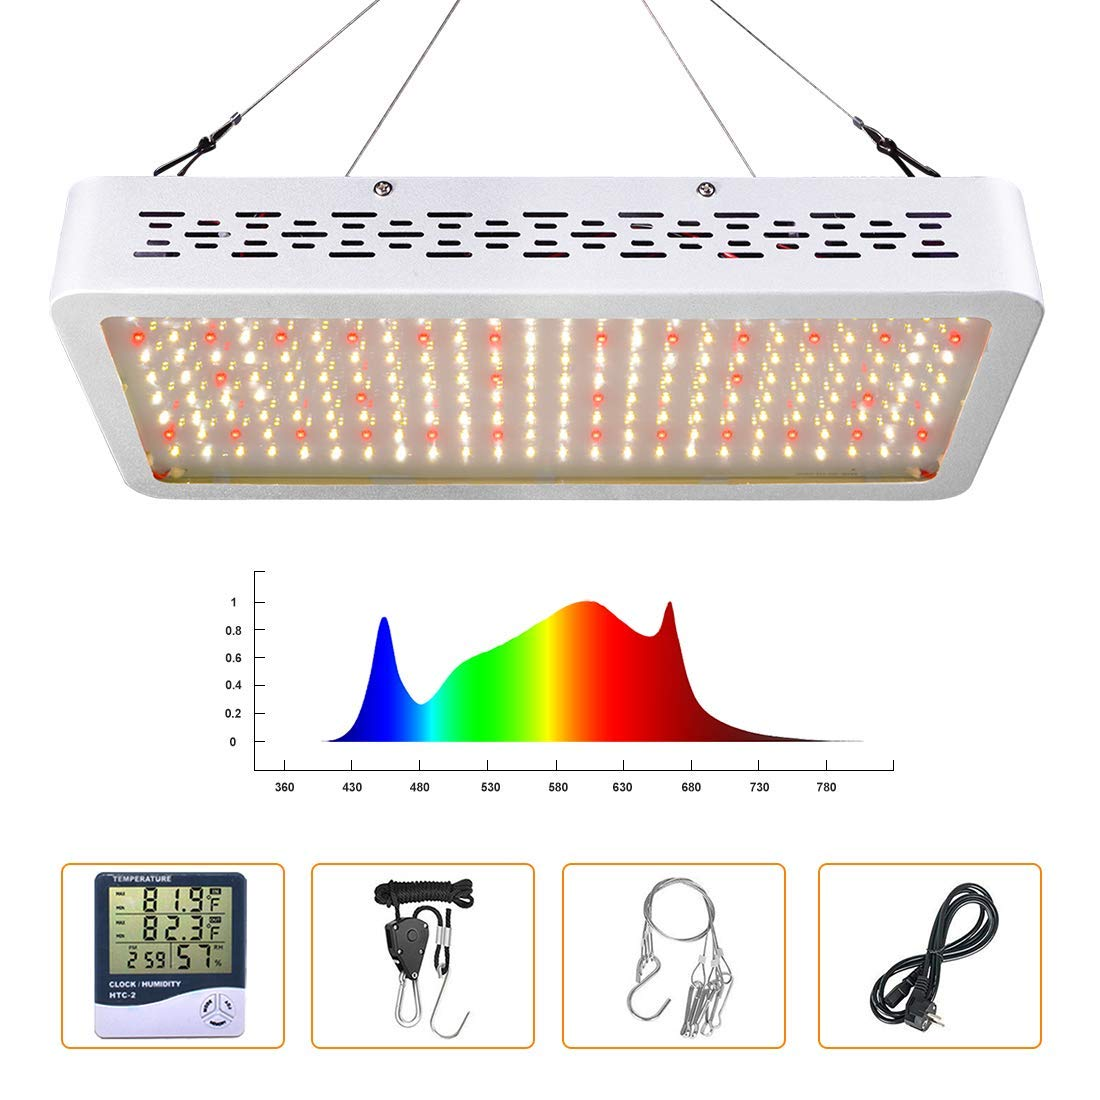 ONEO Led Grow Light 1000W Full Spectrum Sunlight 3500K White and 660nm Red Added Grow Lights for Indoor Plants, Better for Full Growth Flowering Fruiting Veg Seedling with Thermometer Hygrometer by ONEO (Image #2)